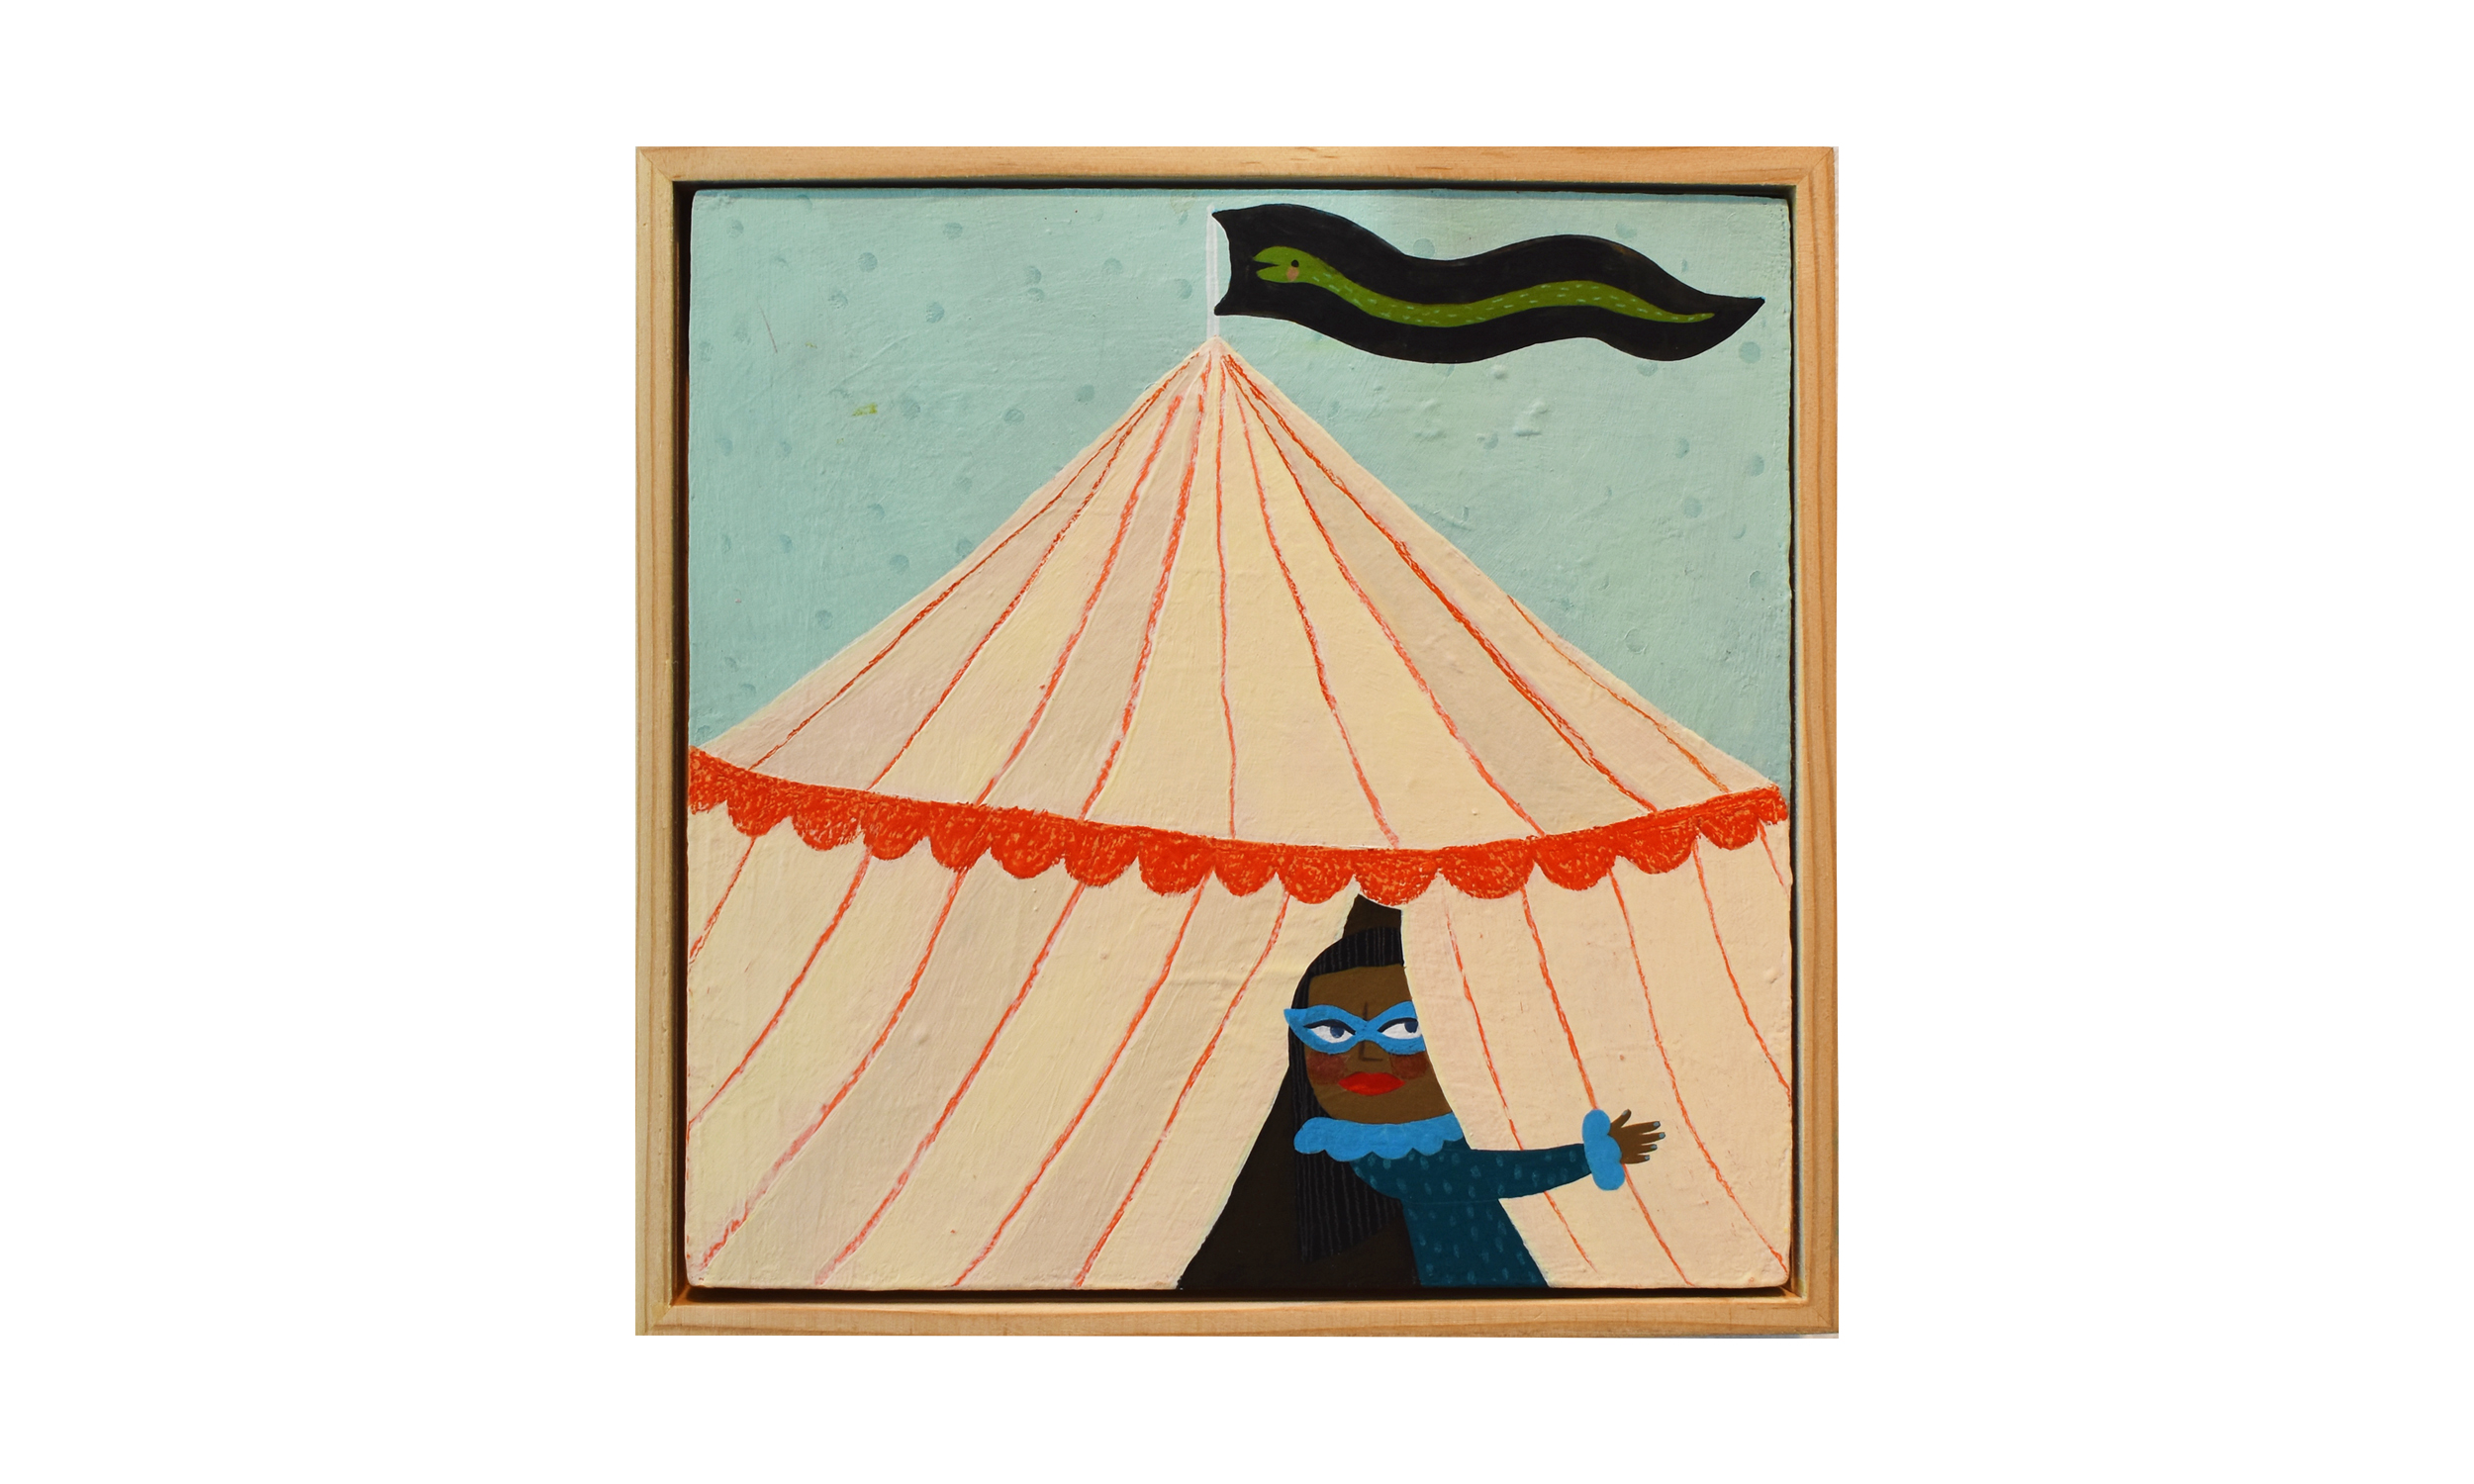 The Mysterious Tent , mixed media on wood panel, 8 x 8 inches, SOLD